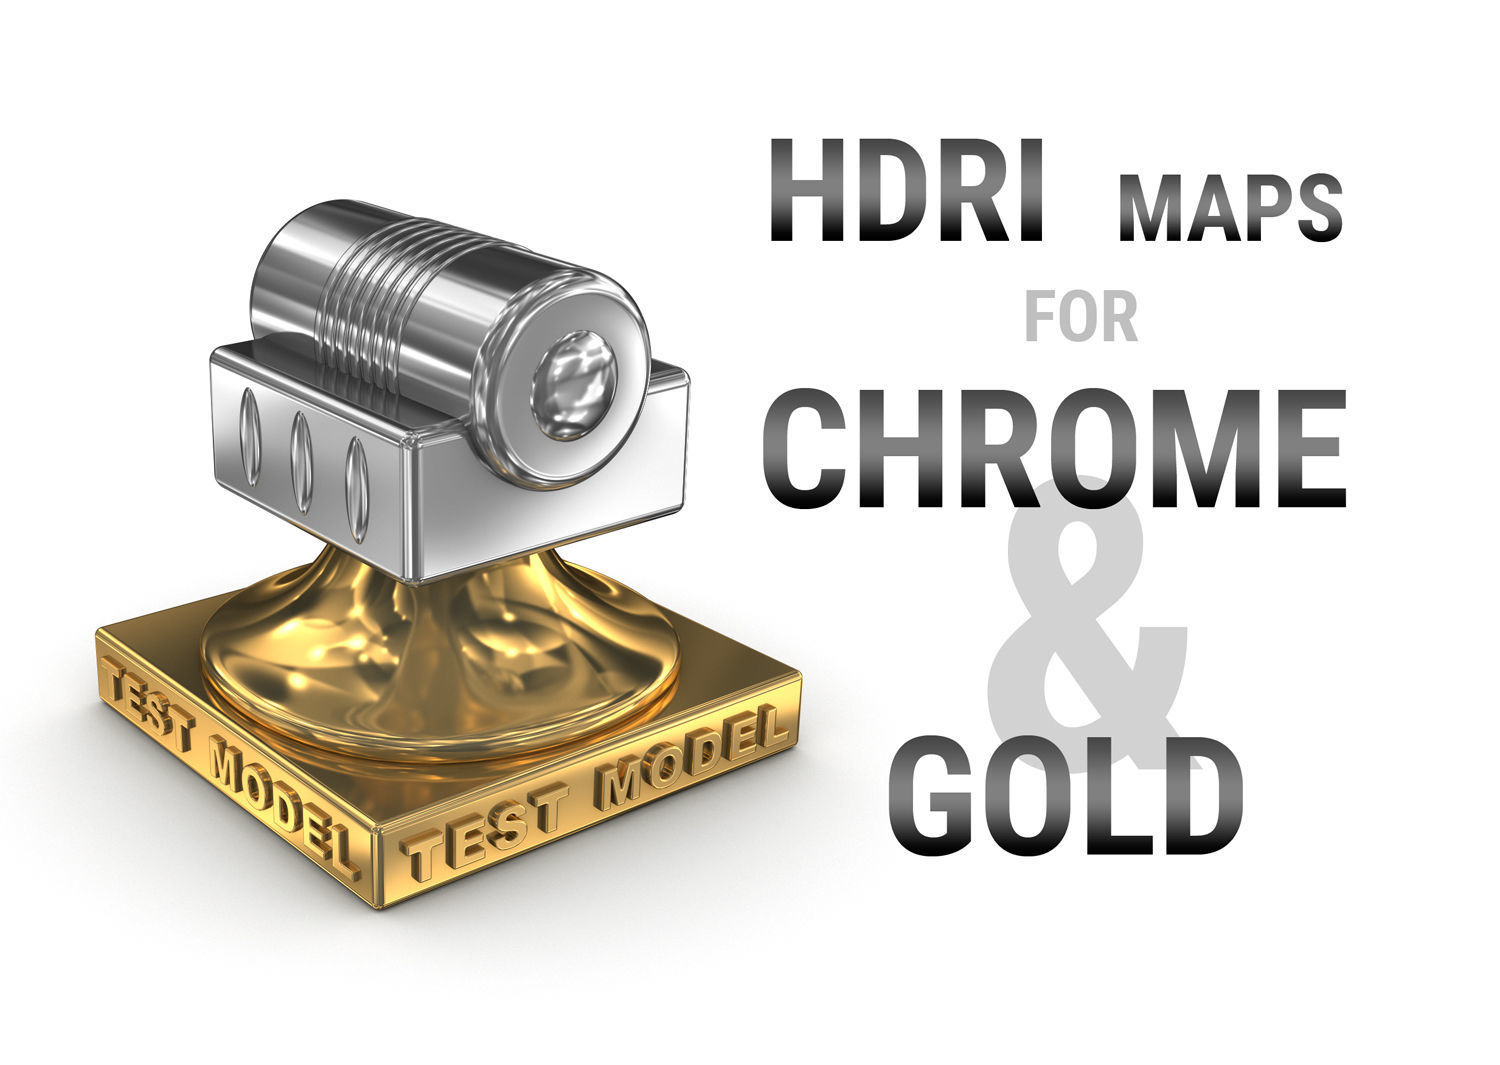 HDRI maps for chrome and gold metal surfaces | Texture